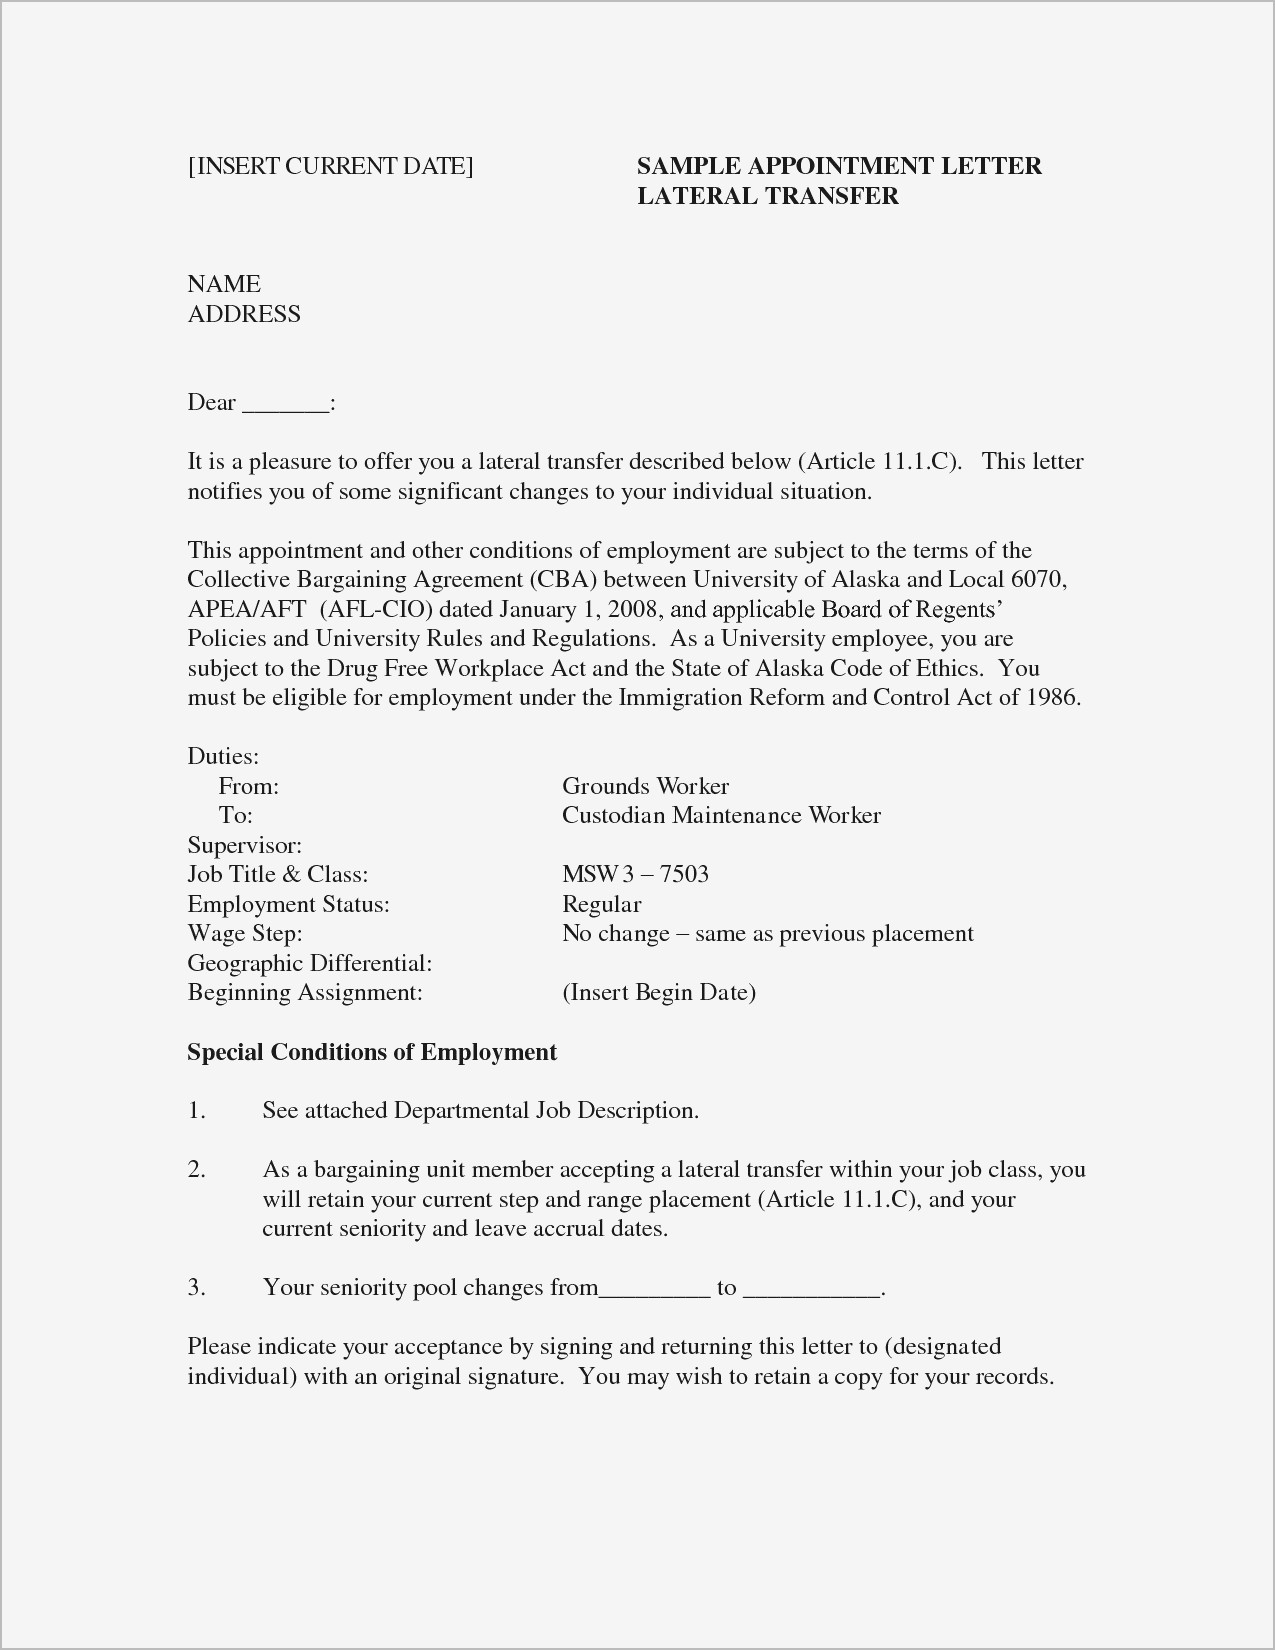 Letter Of Instruction Template Stock Transfer - Intent Letter for Job Transfer Refrence Letter Intent Template Word